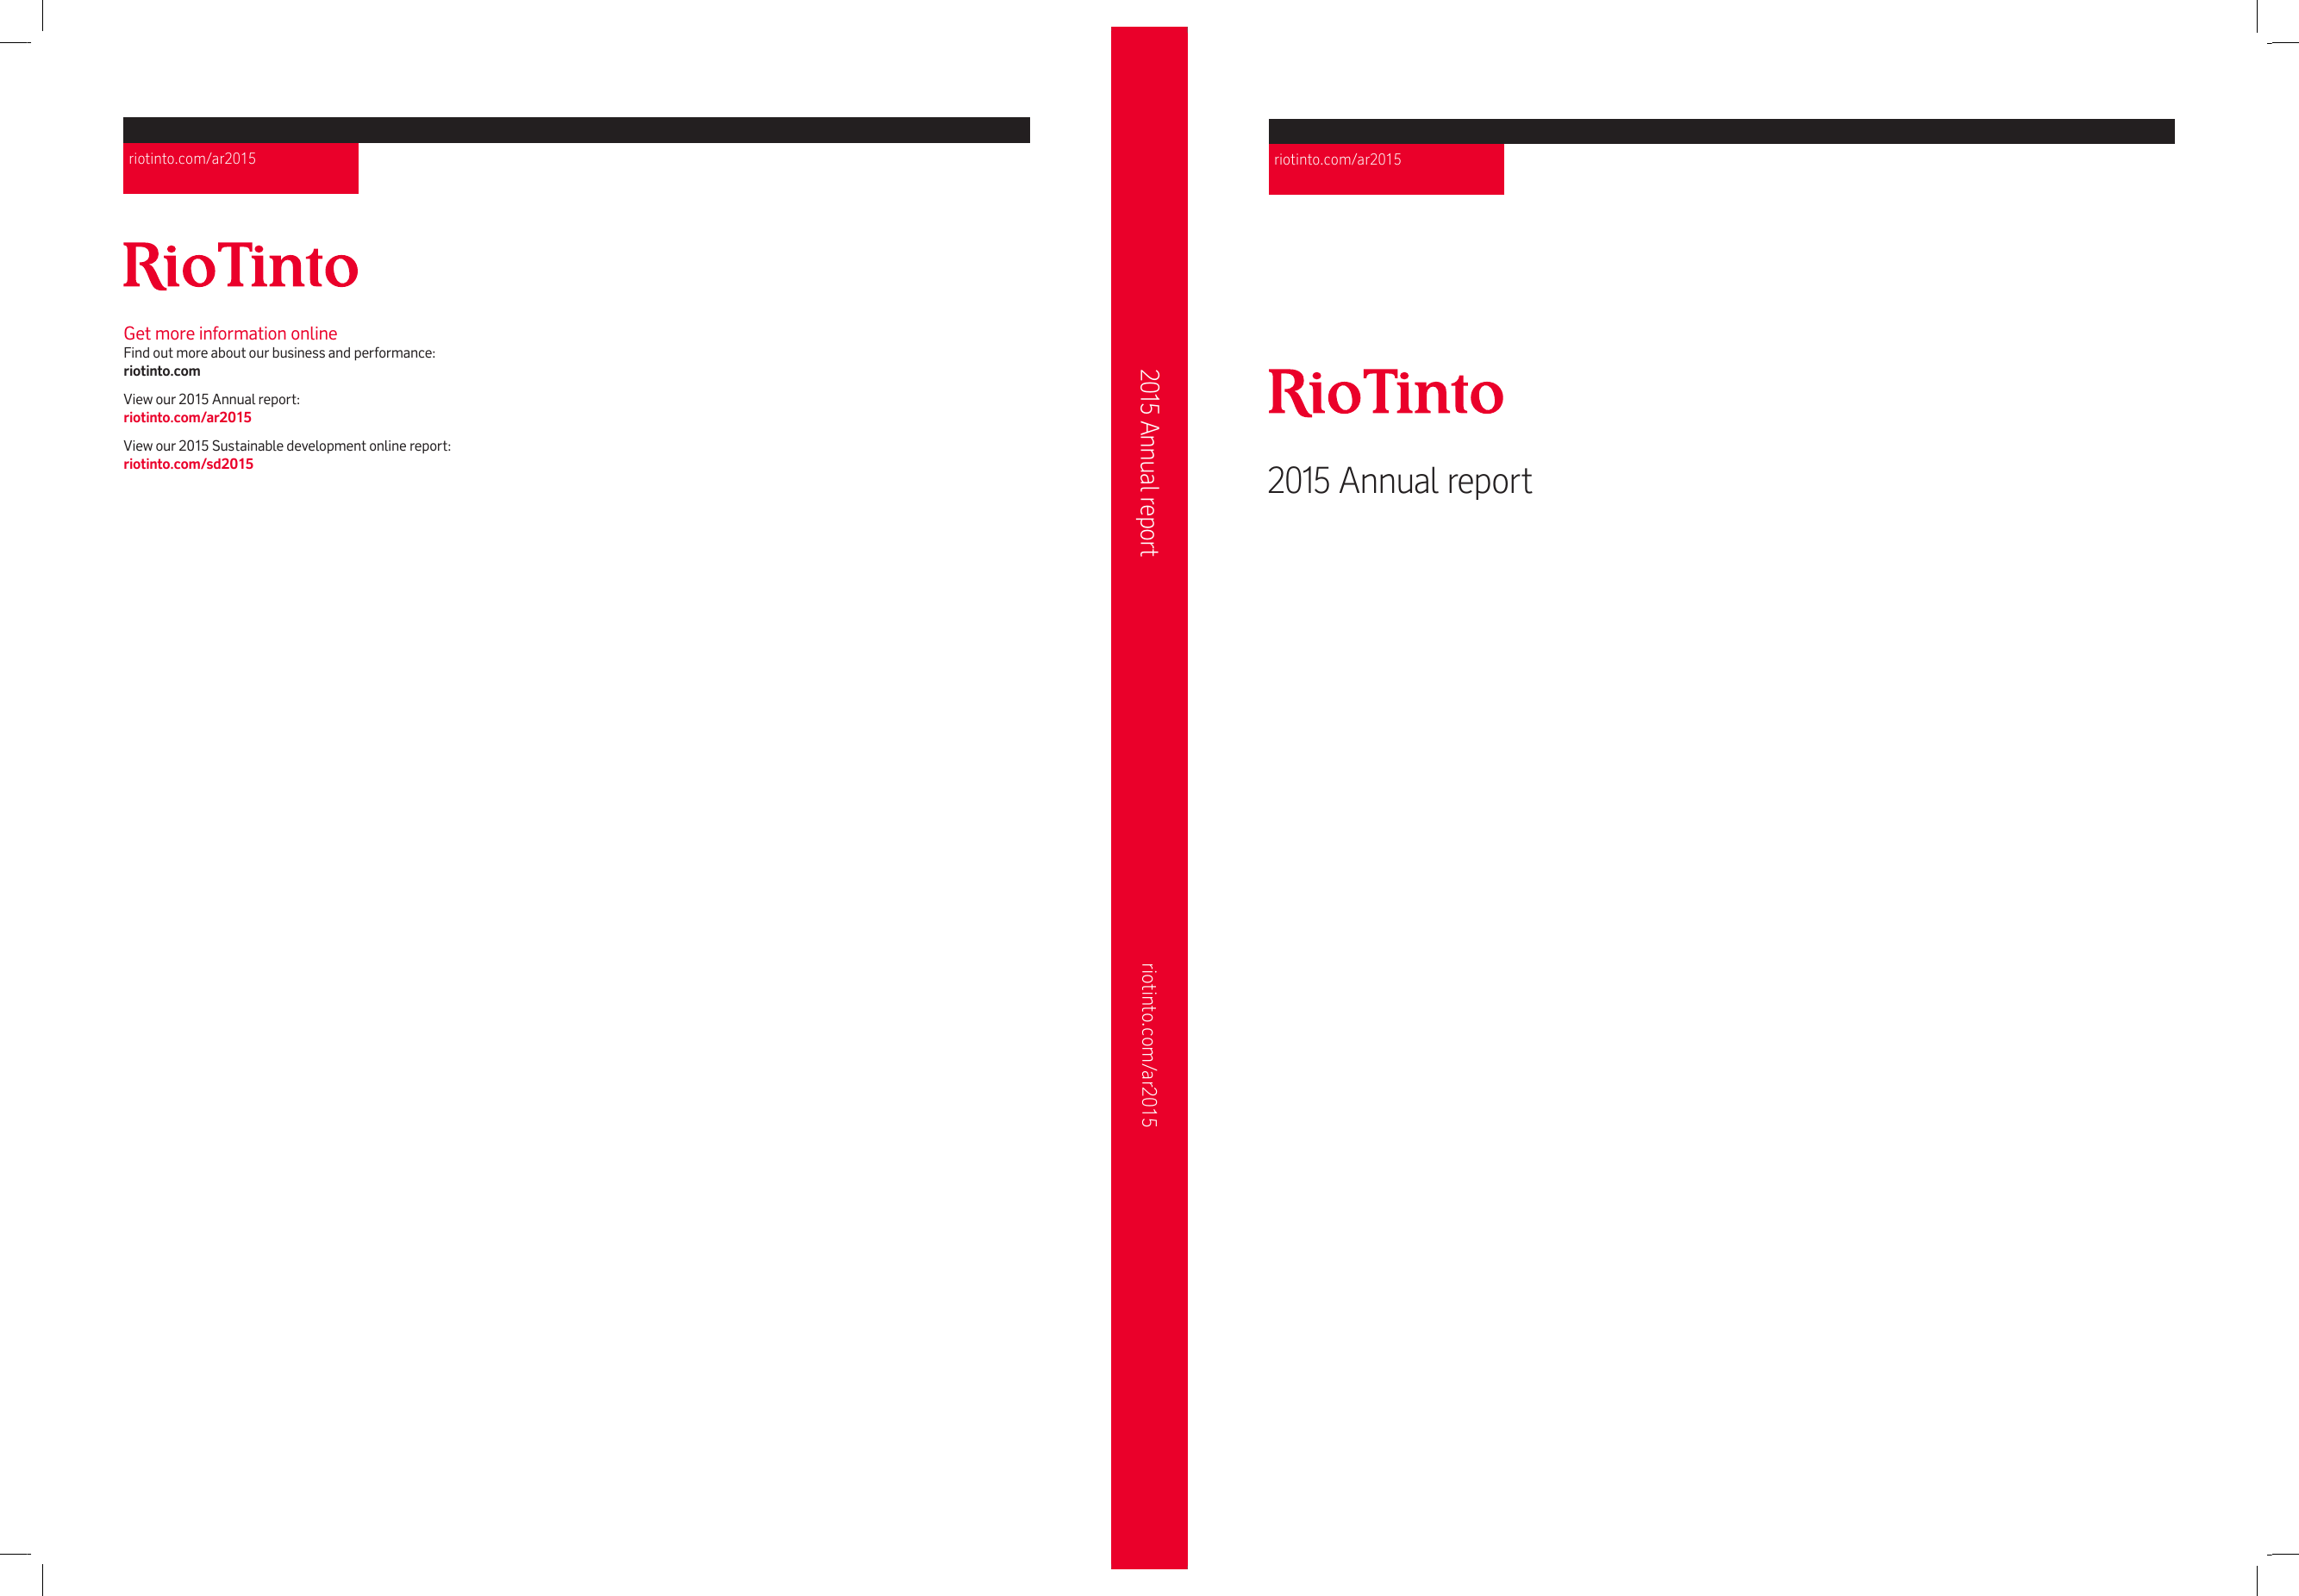 Rio Tinto Annual Report 2015 Wiring Instructions Etrade